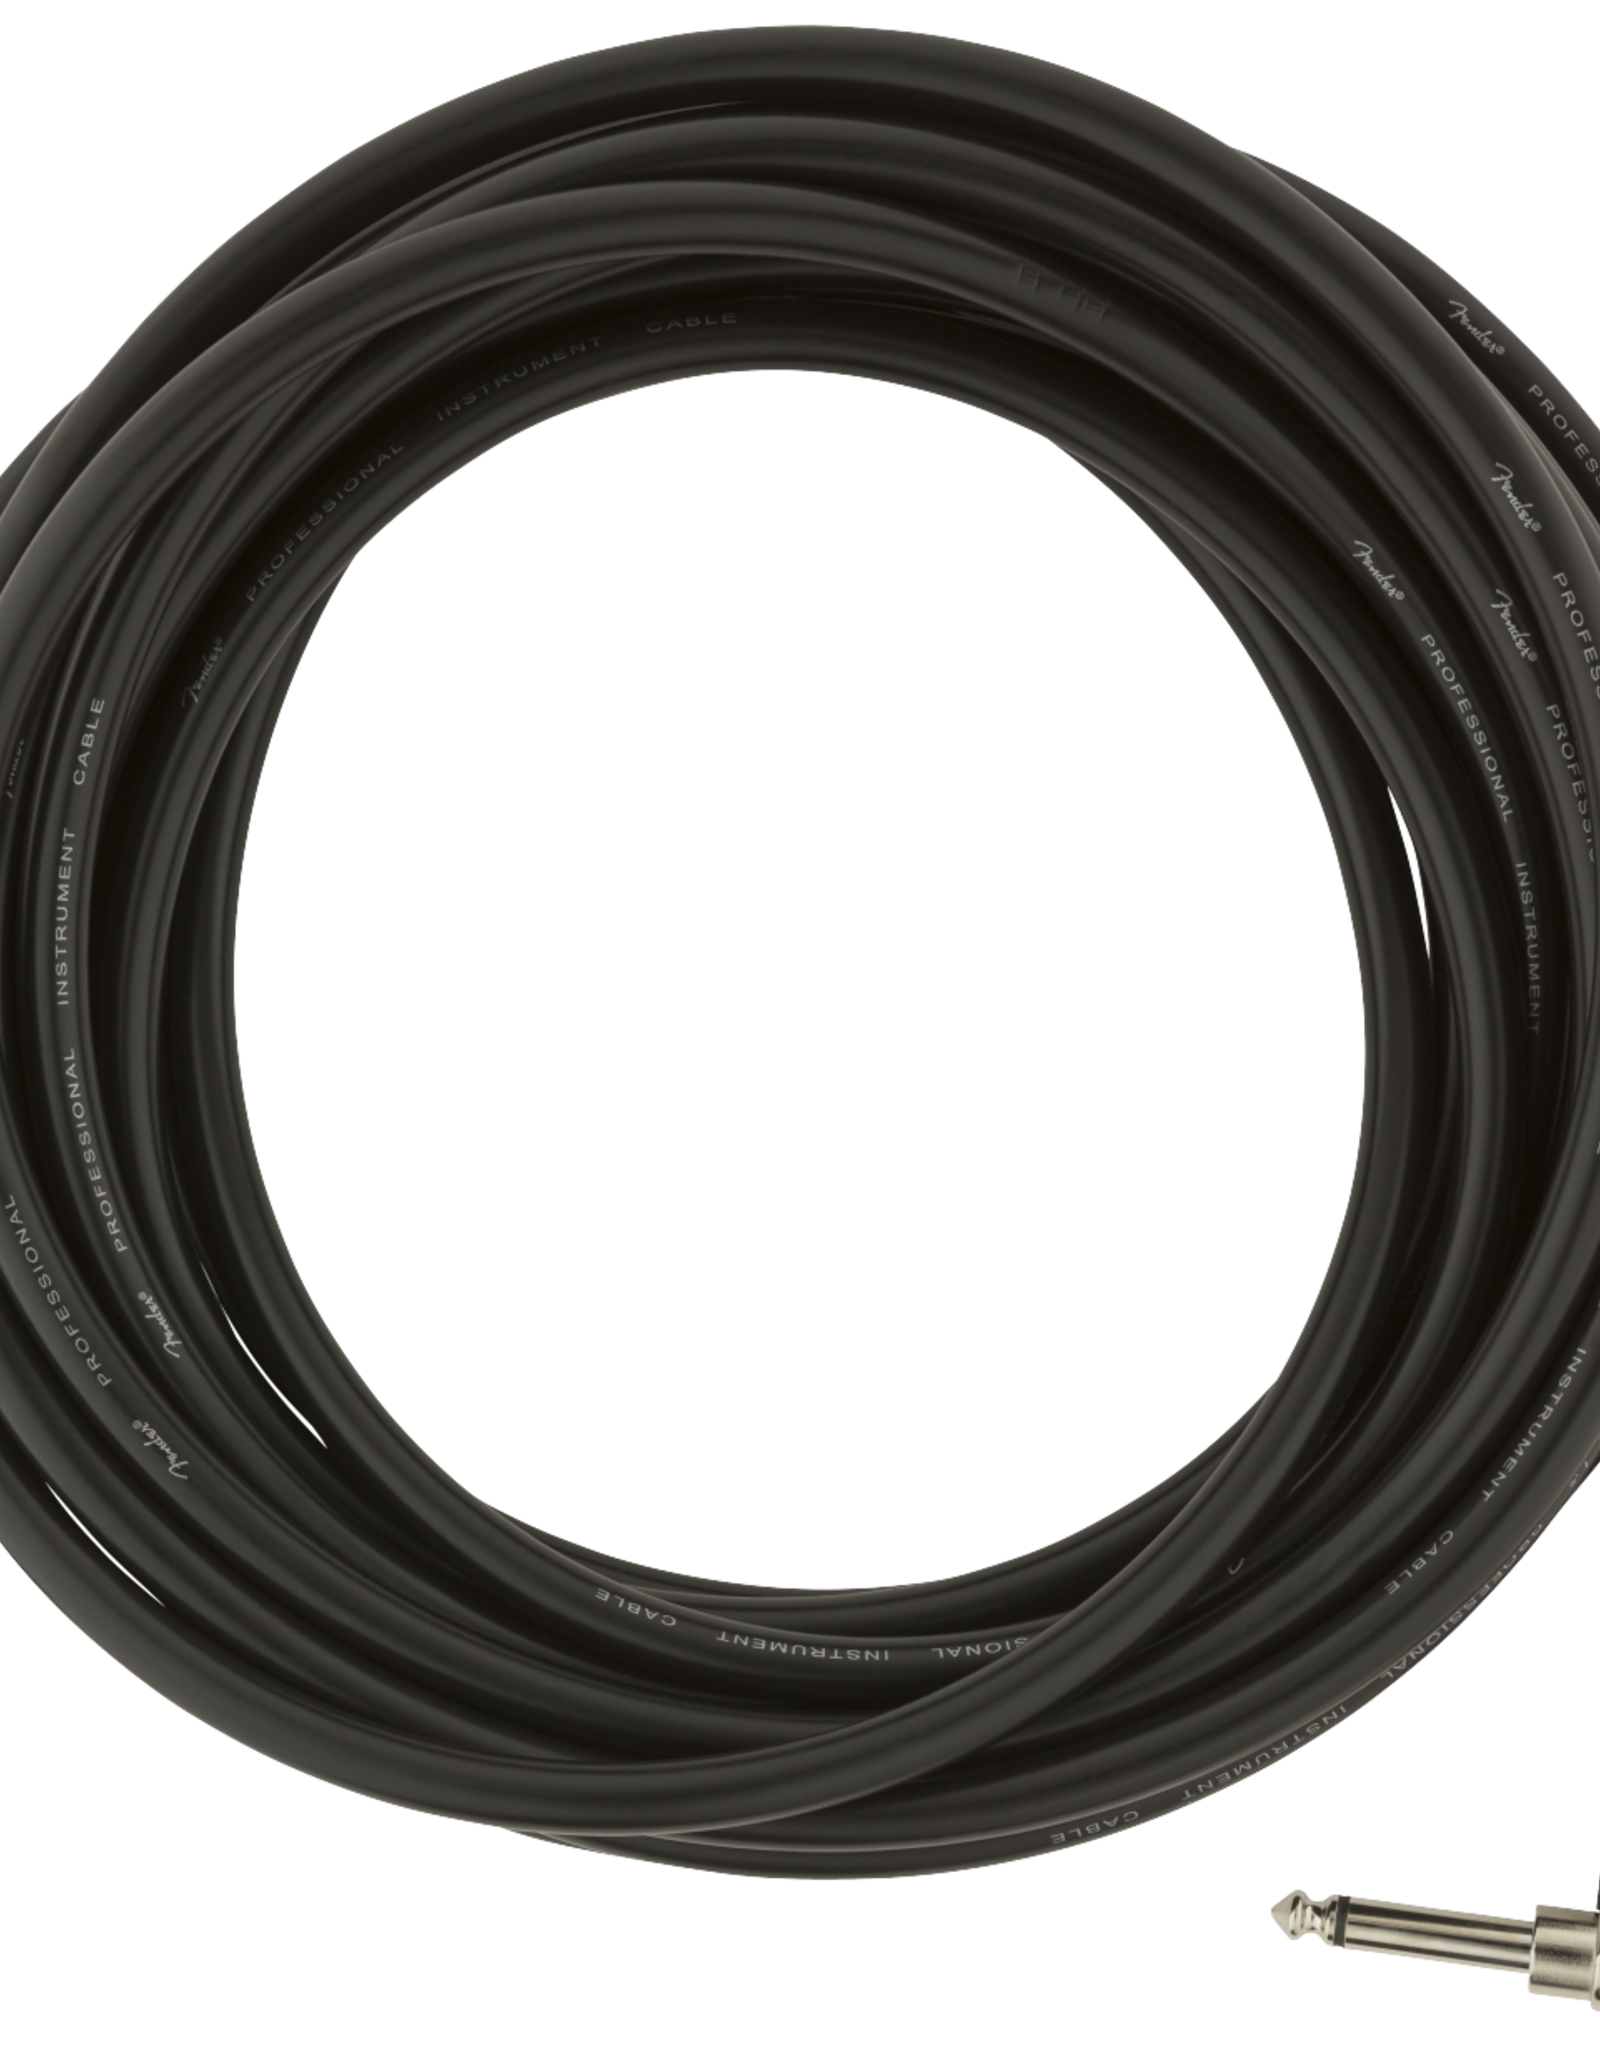 Fender Fender Professional Series Instrument Cables, Straight/Angle, 25', Black